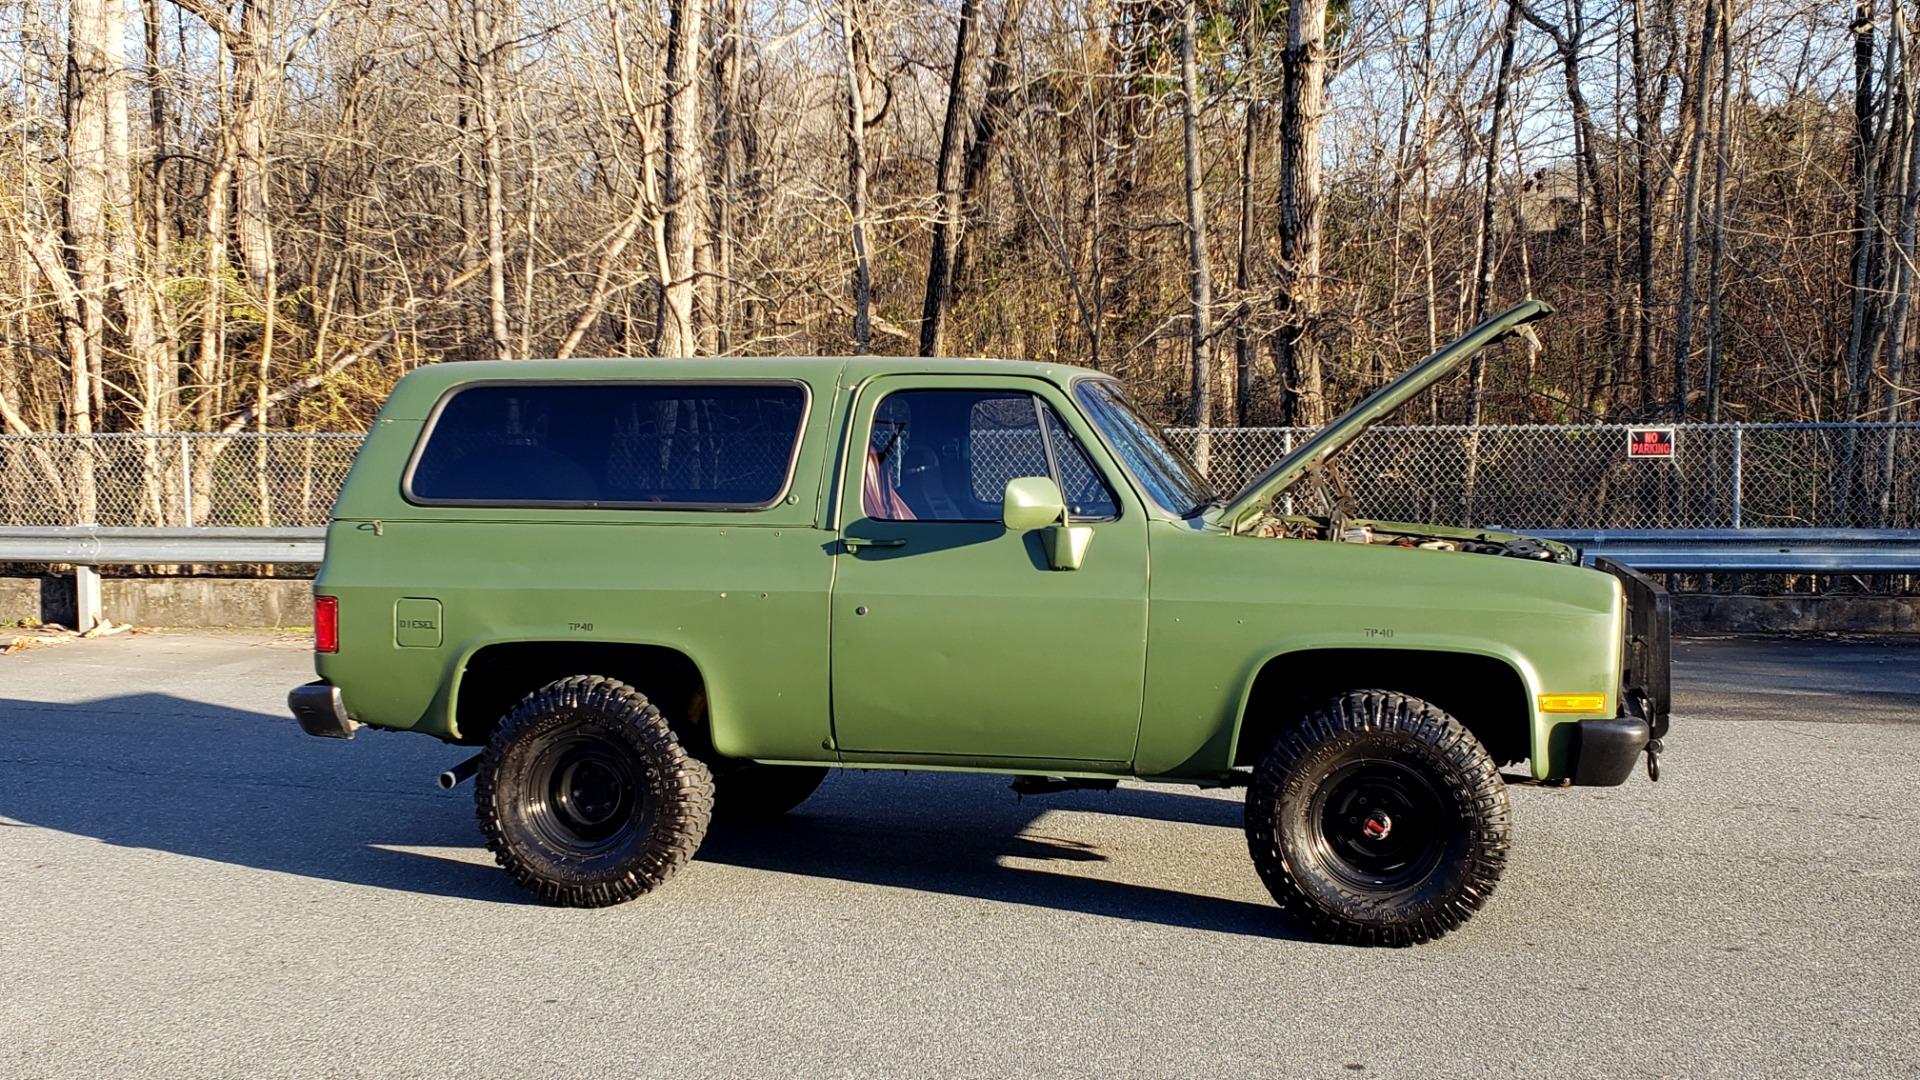 Used 1985 Chevrolet BLAZER D10 MILITARY SUV / 4X4 / 6.2L DIESEL V8 / VINTAGE AIR for sale $15,000 at Formula Imports in Charlotte NC 28227 9